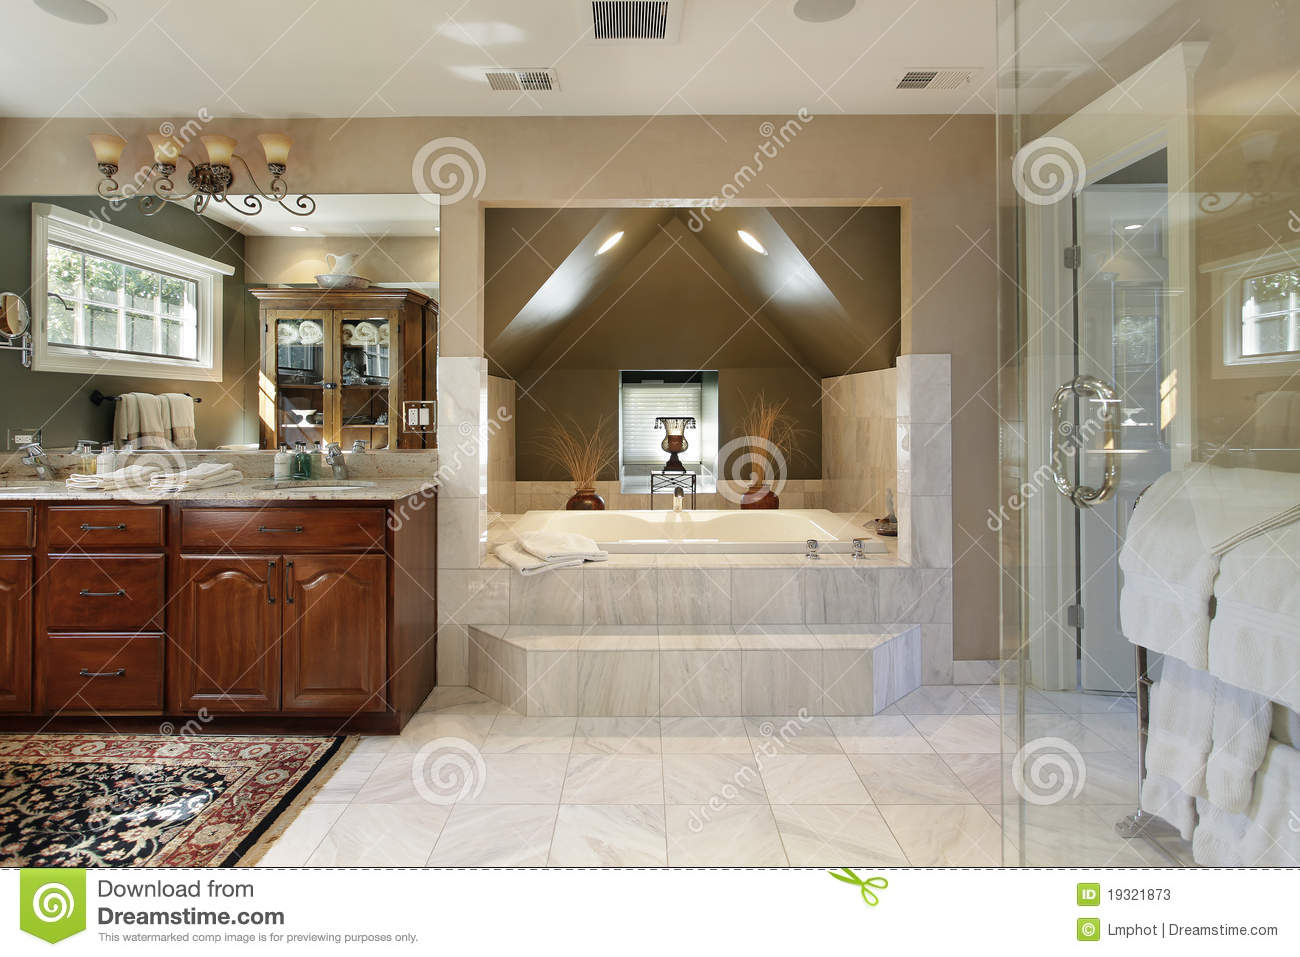 Master Bath With Step Up Tub Stock Image - Image of interior, room ...